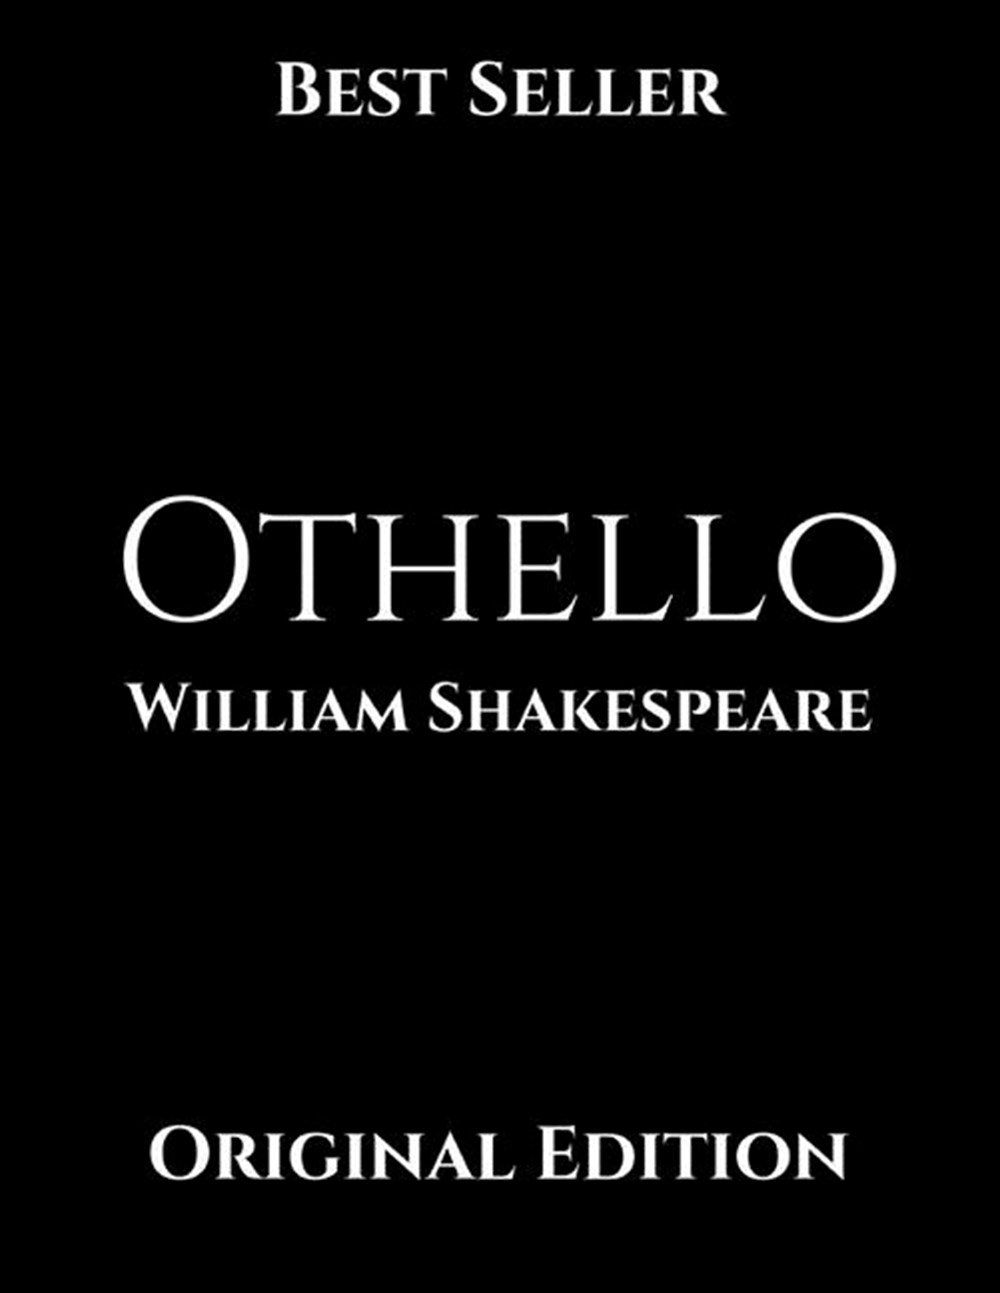 Othello Brilliant Story ( Annotated ) By William Shakespeare.